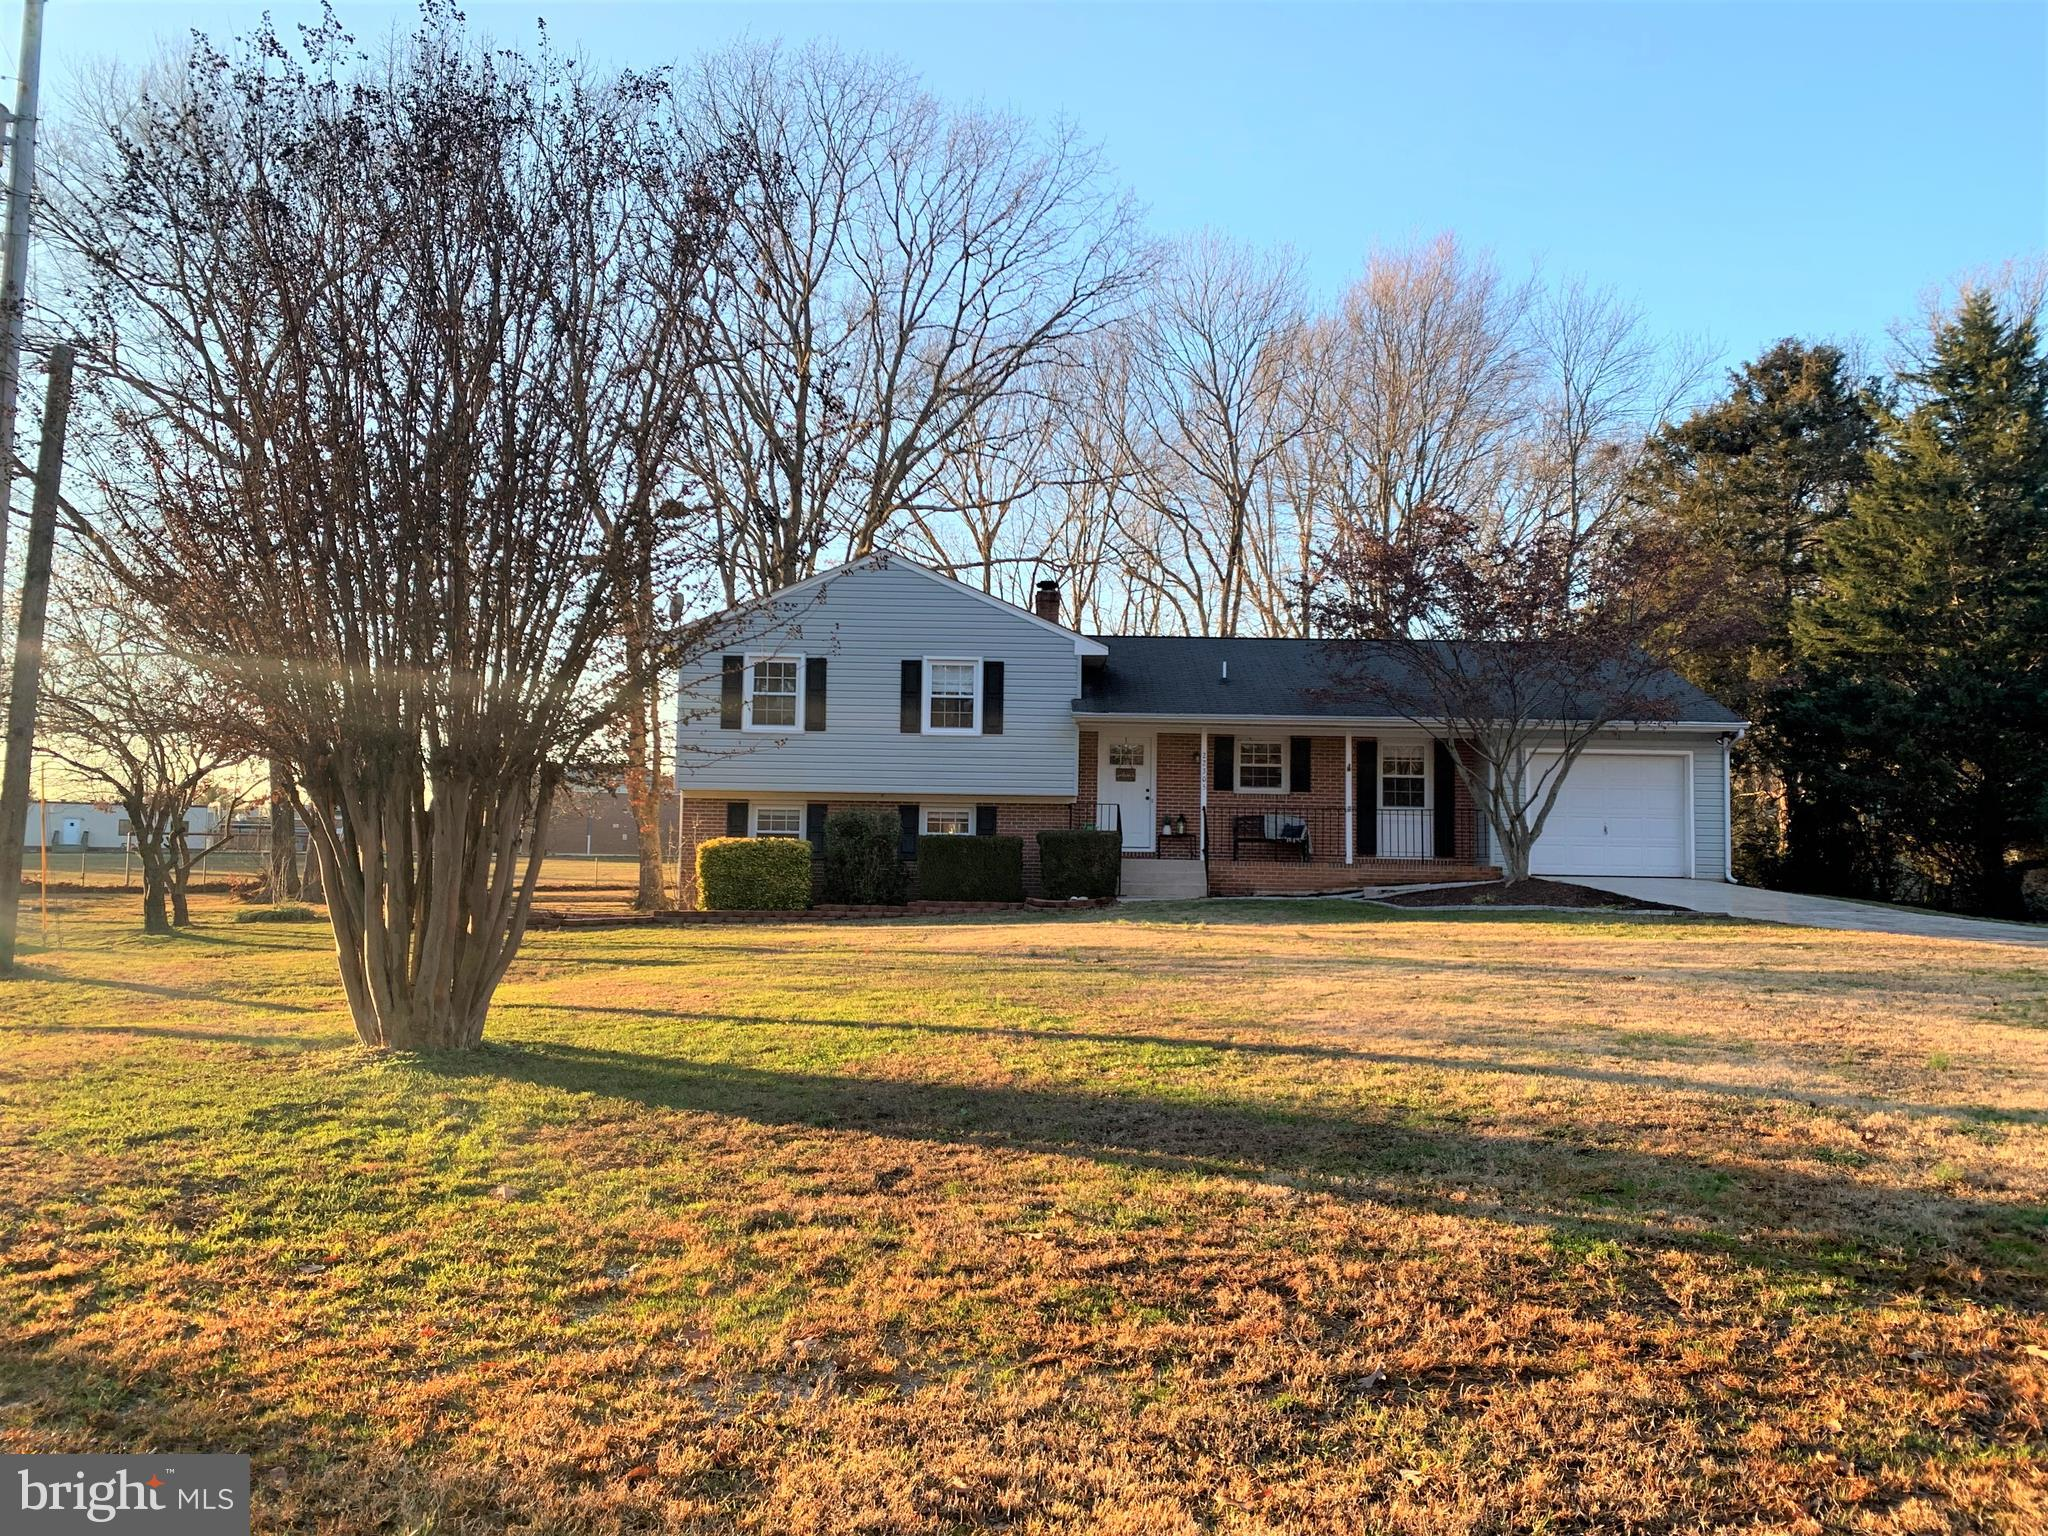 22305 CALLAHAN DRIVE, GREAT MILLS, MD 20634